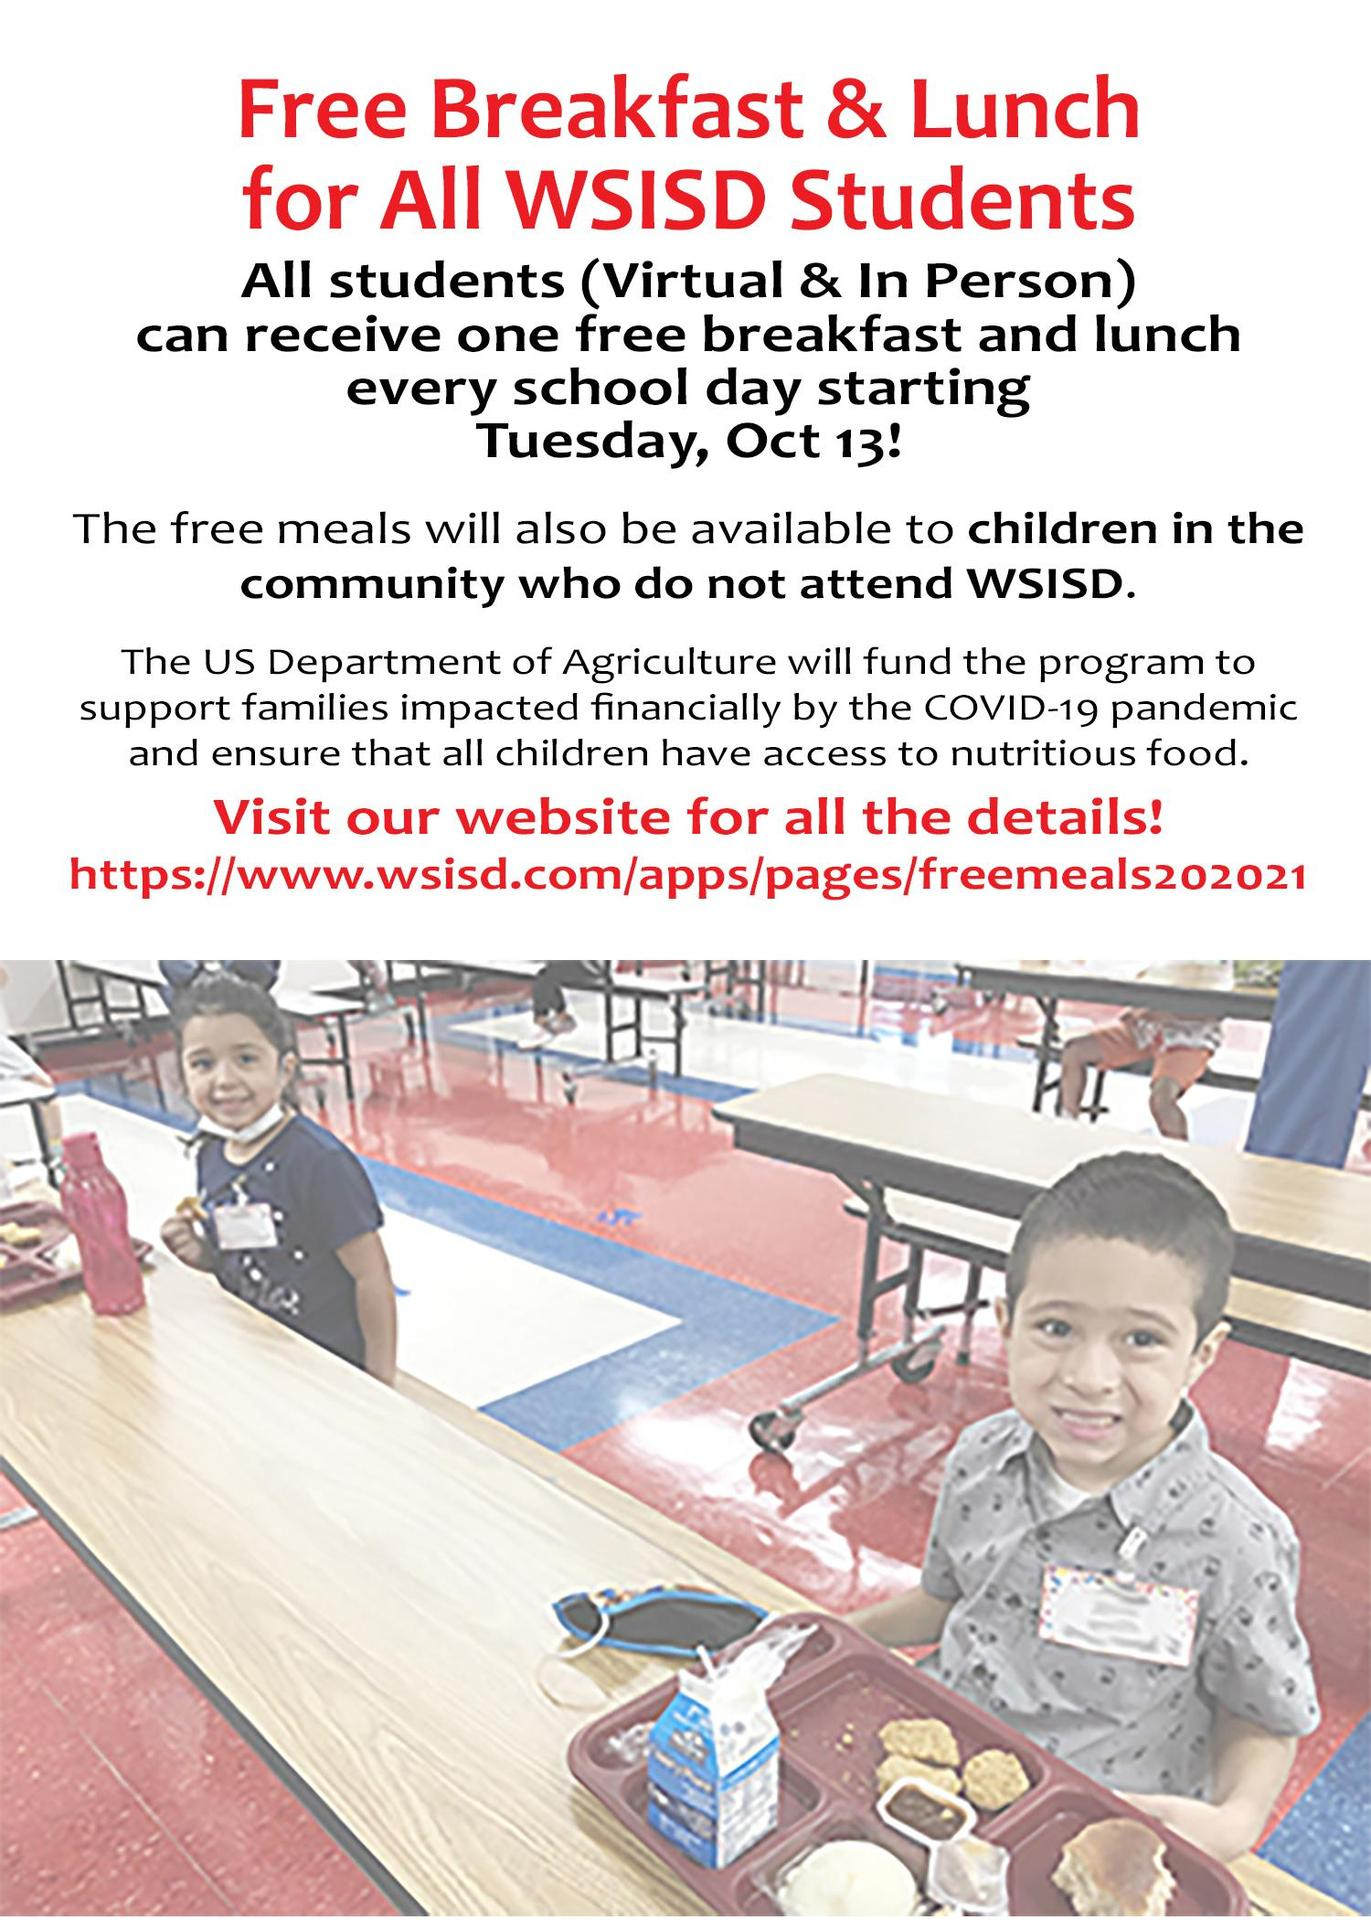 Free Meals for All Students Begins Oct. 13